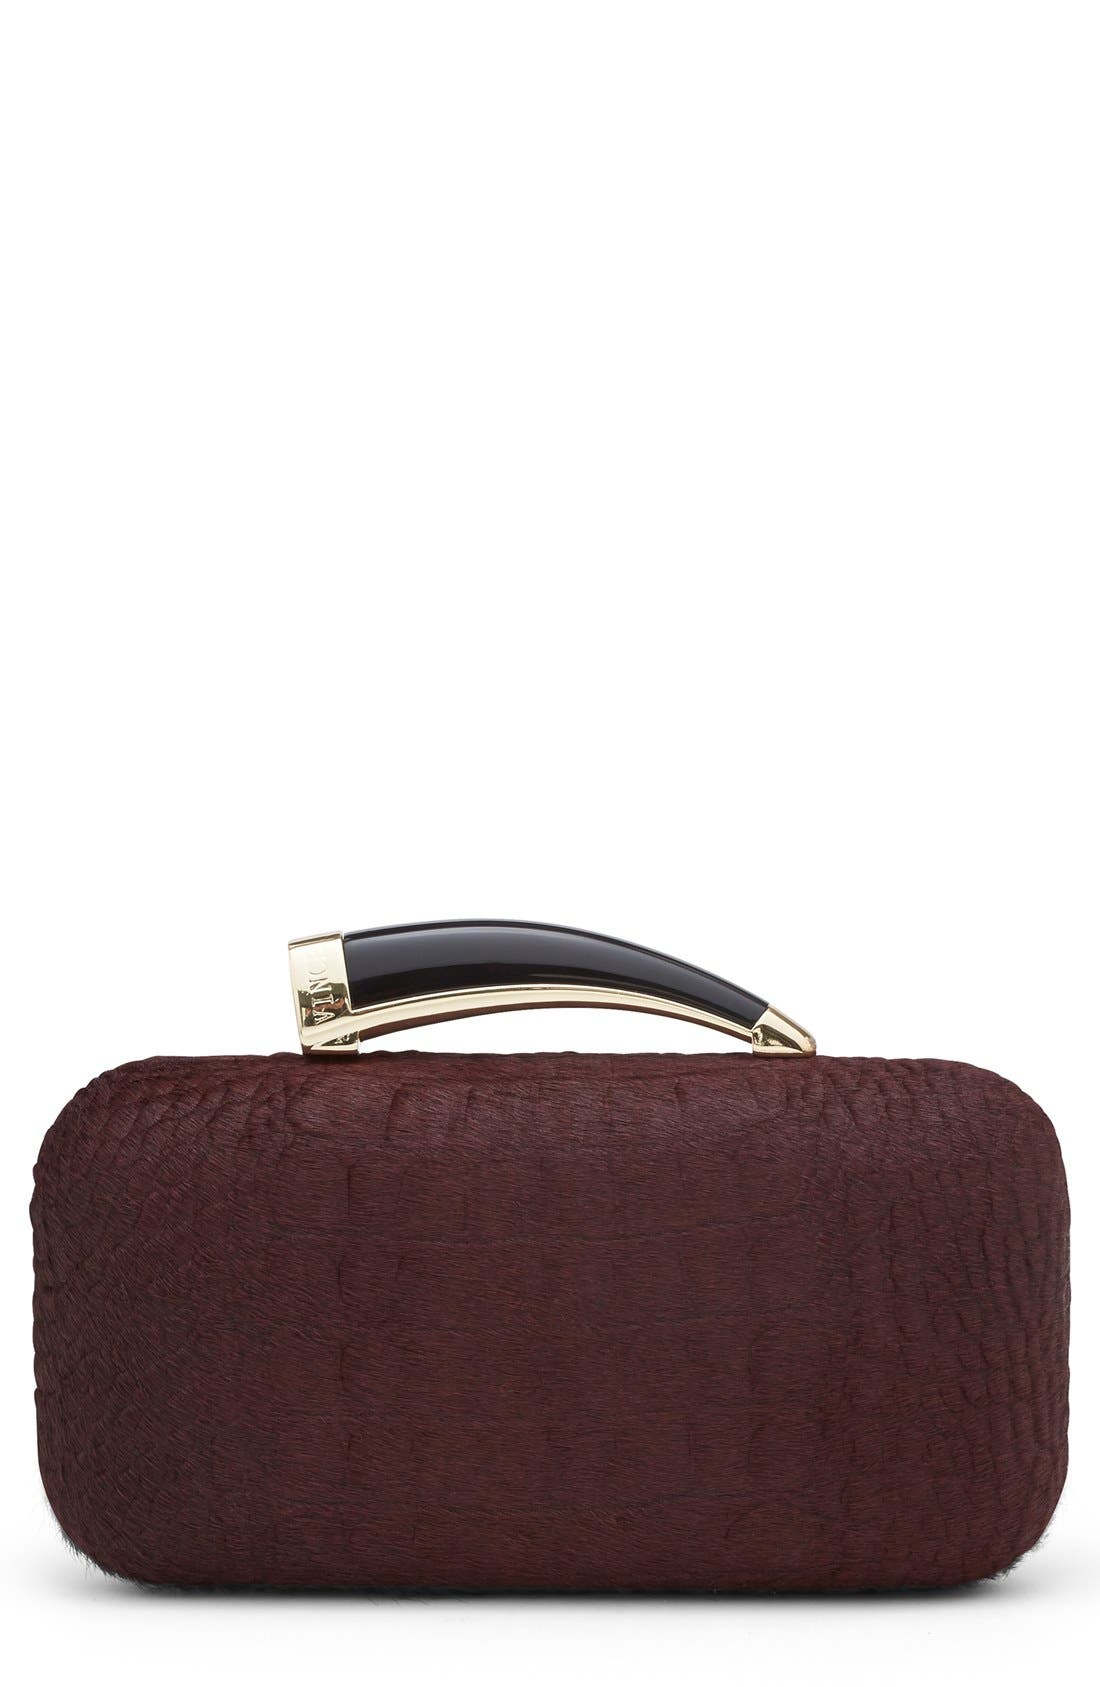 Main Image - Vince Camuto 'Horn' Clutch